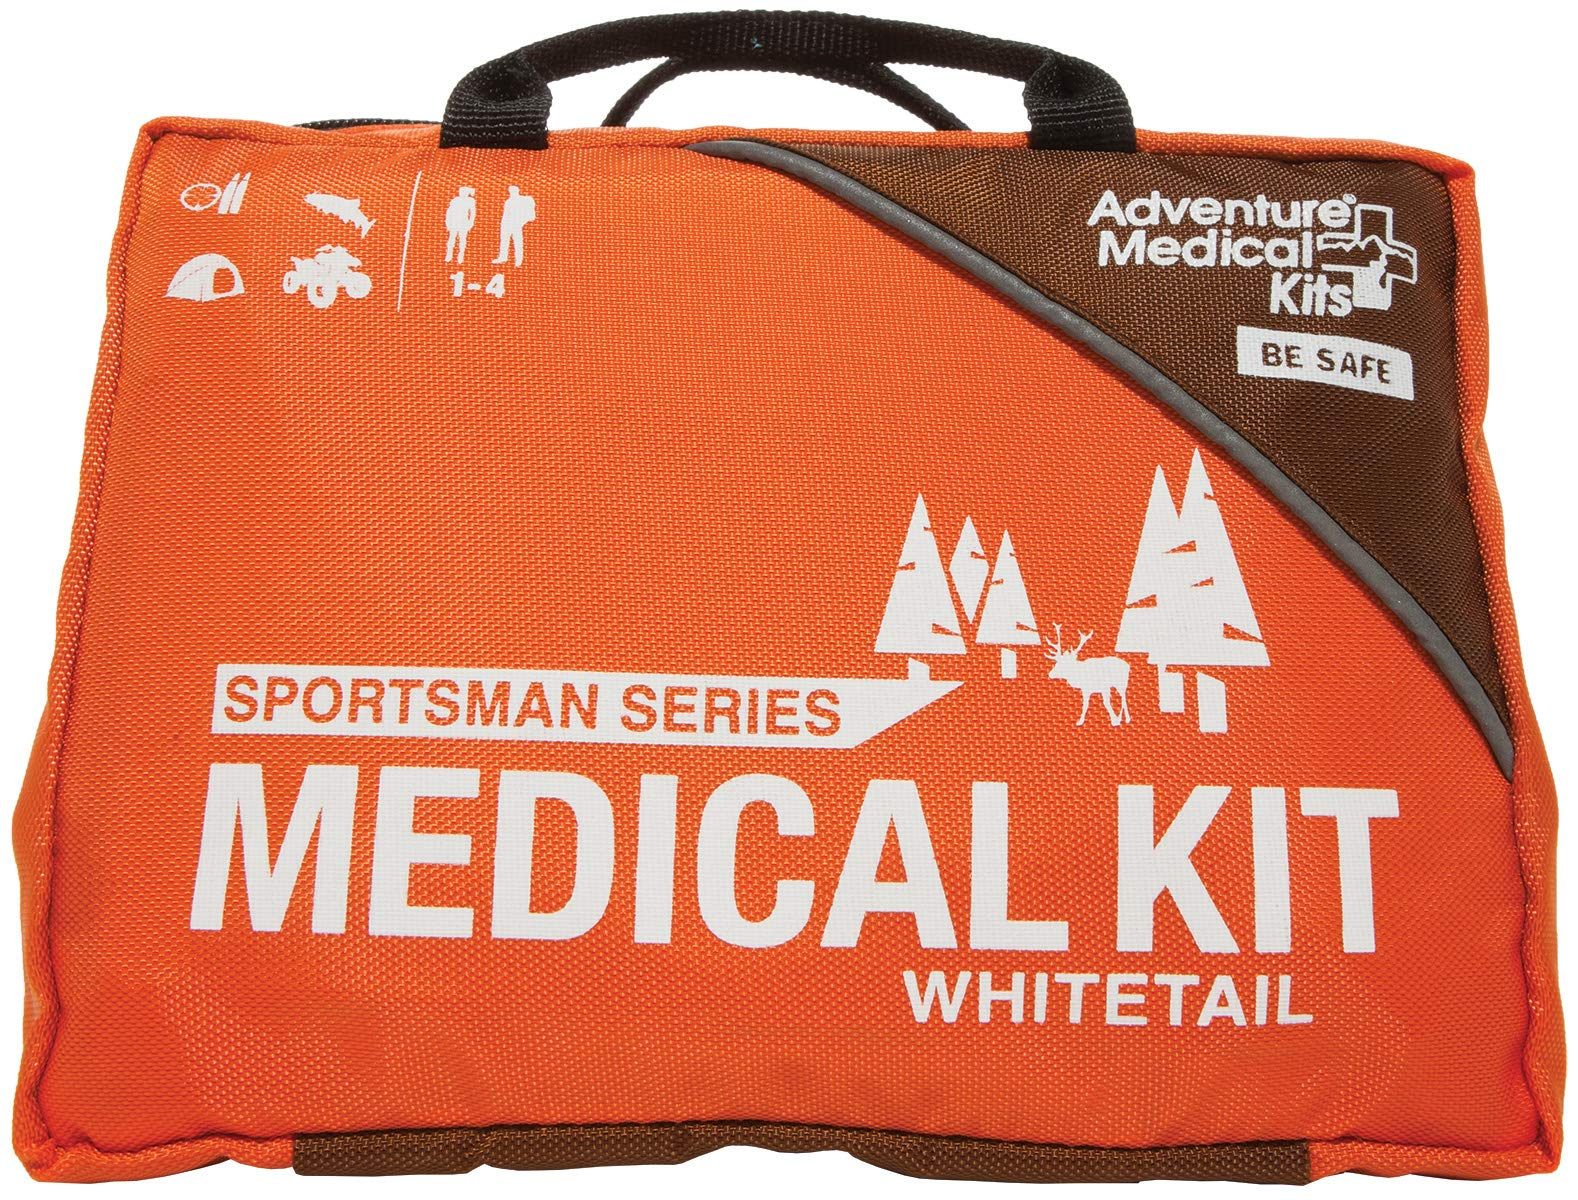 Adventure Medical Kits Sportsman Series Whitetail First Aid Kit by Adventure Medical Kits